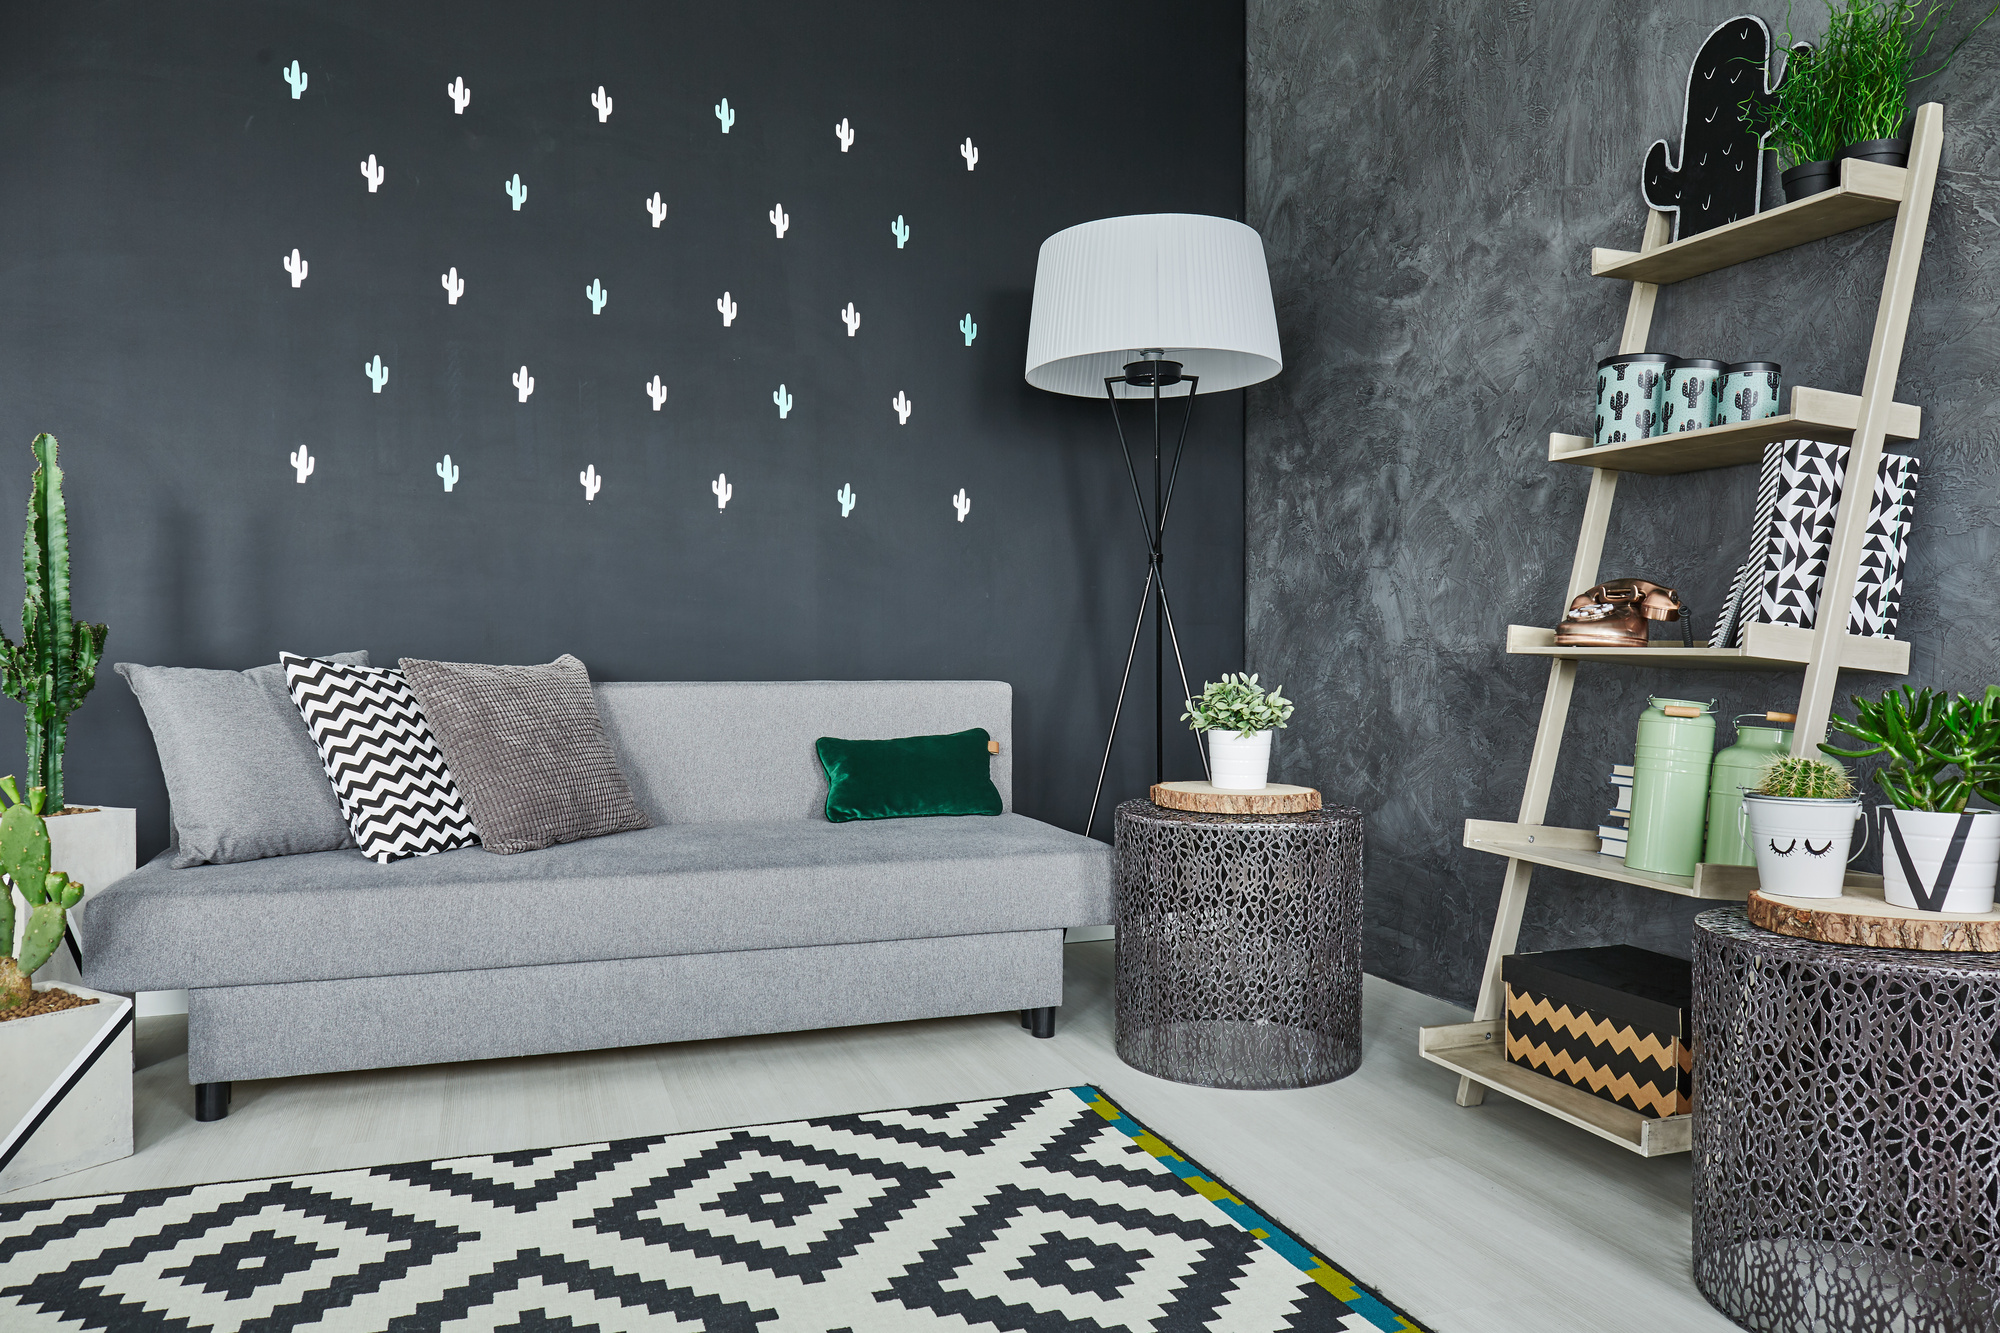 10 Wall Decor Ideas For Your Home - Addicted To All Things ...